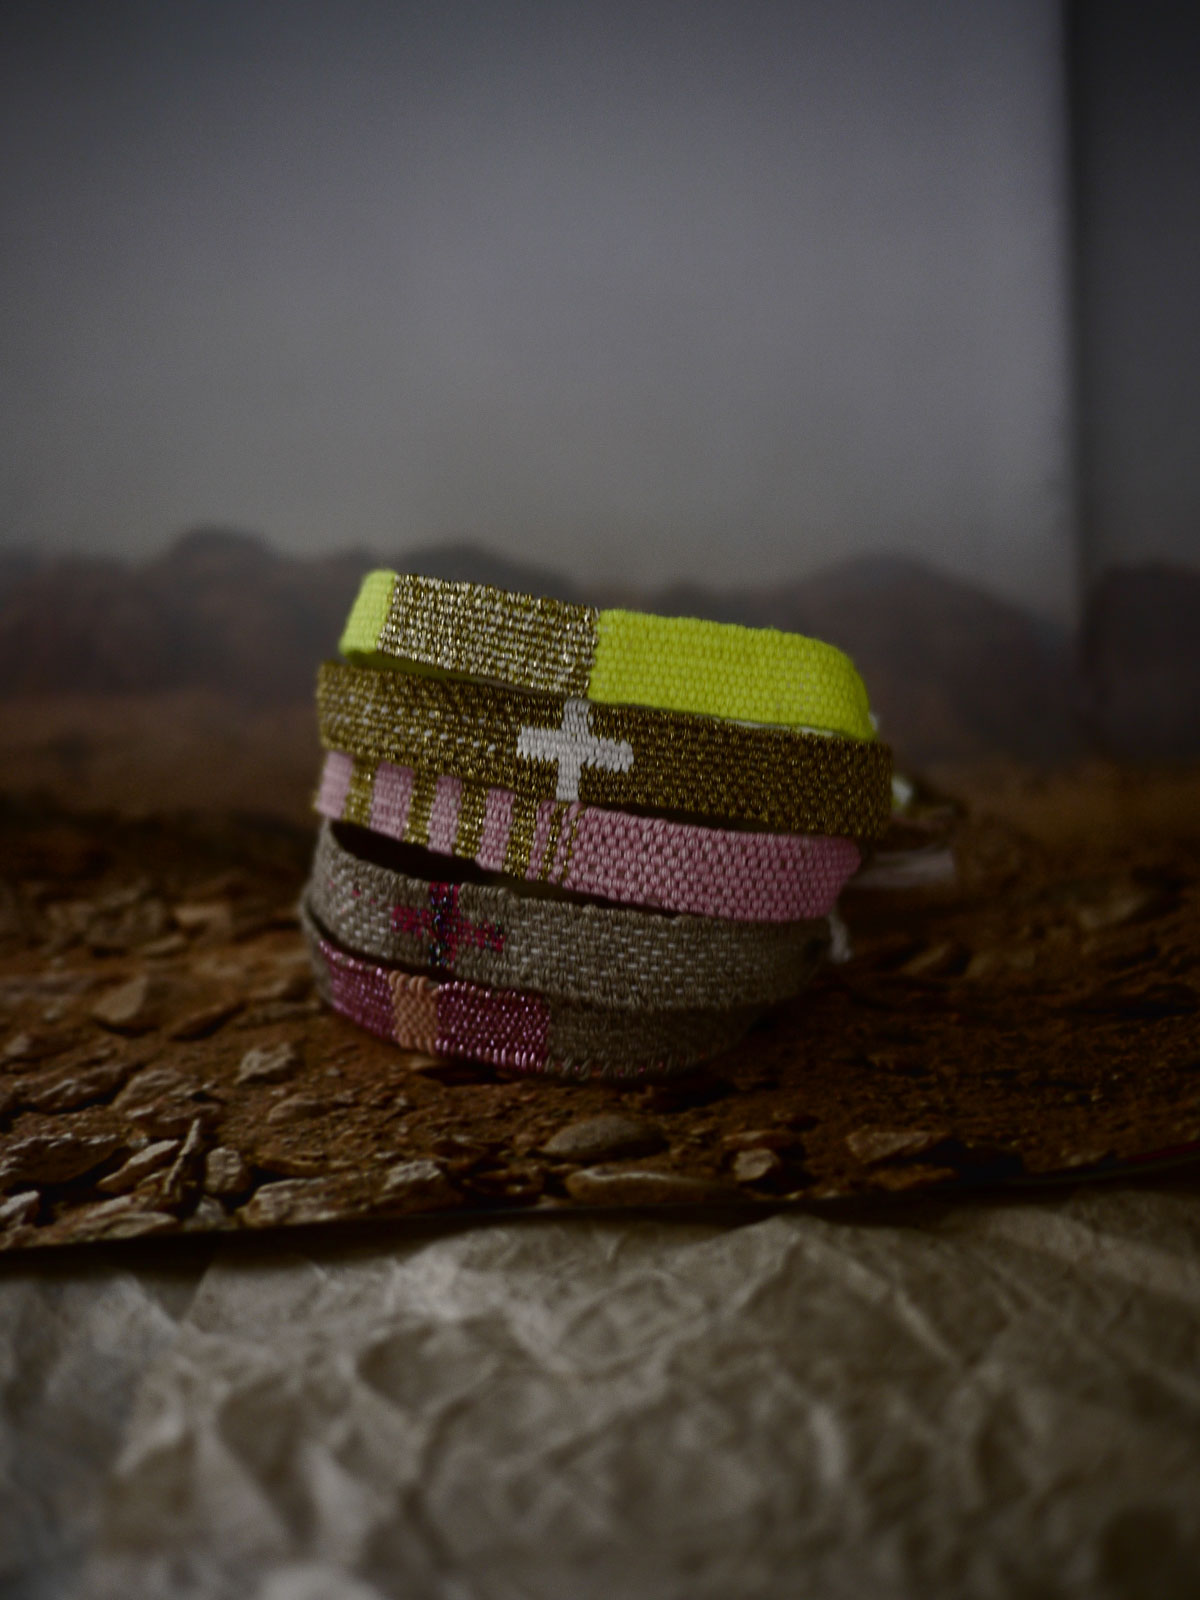 Bracelets LOOM - Design textile by Myriam Balaÿ myriam-balay-tissage AT WORK L'appartement